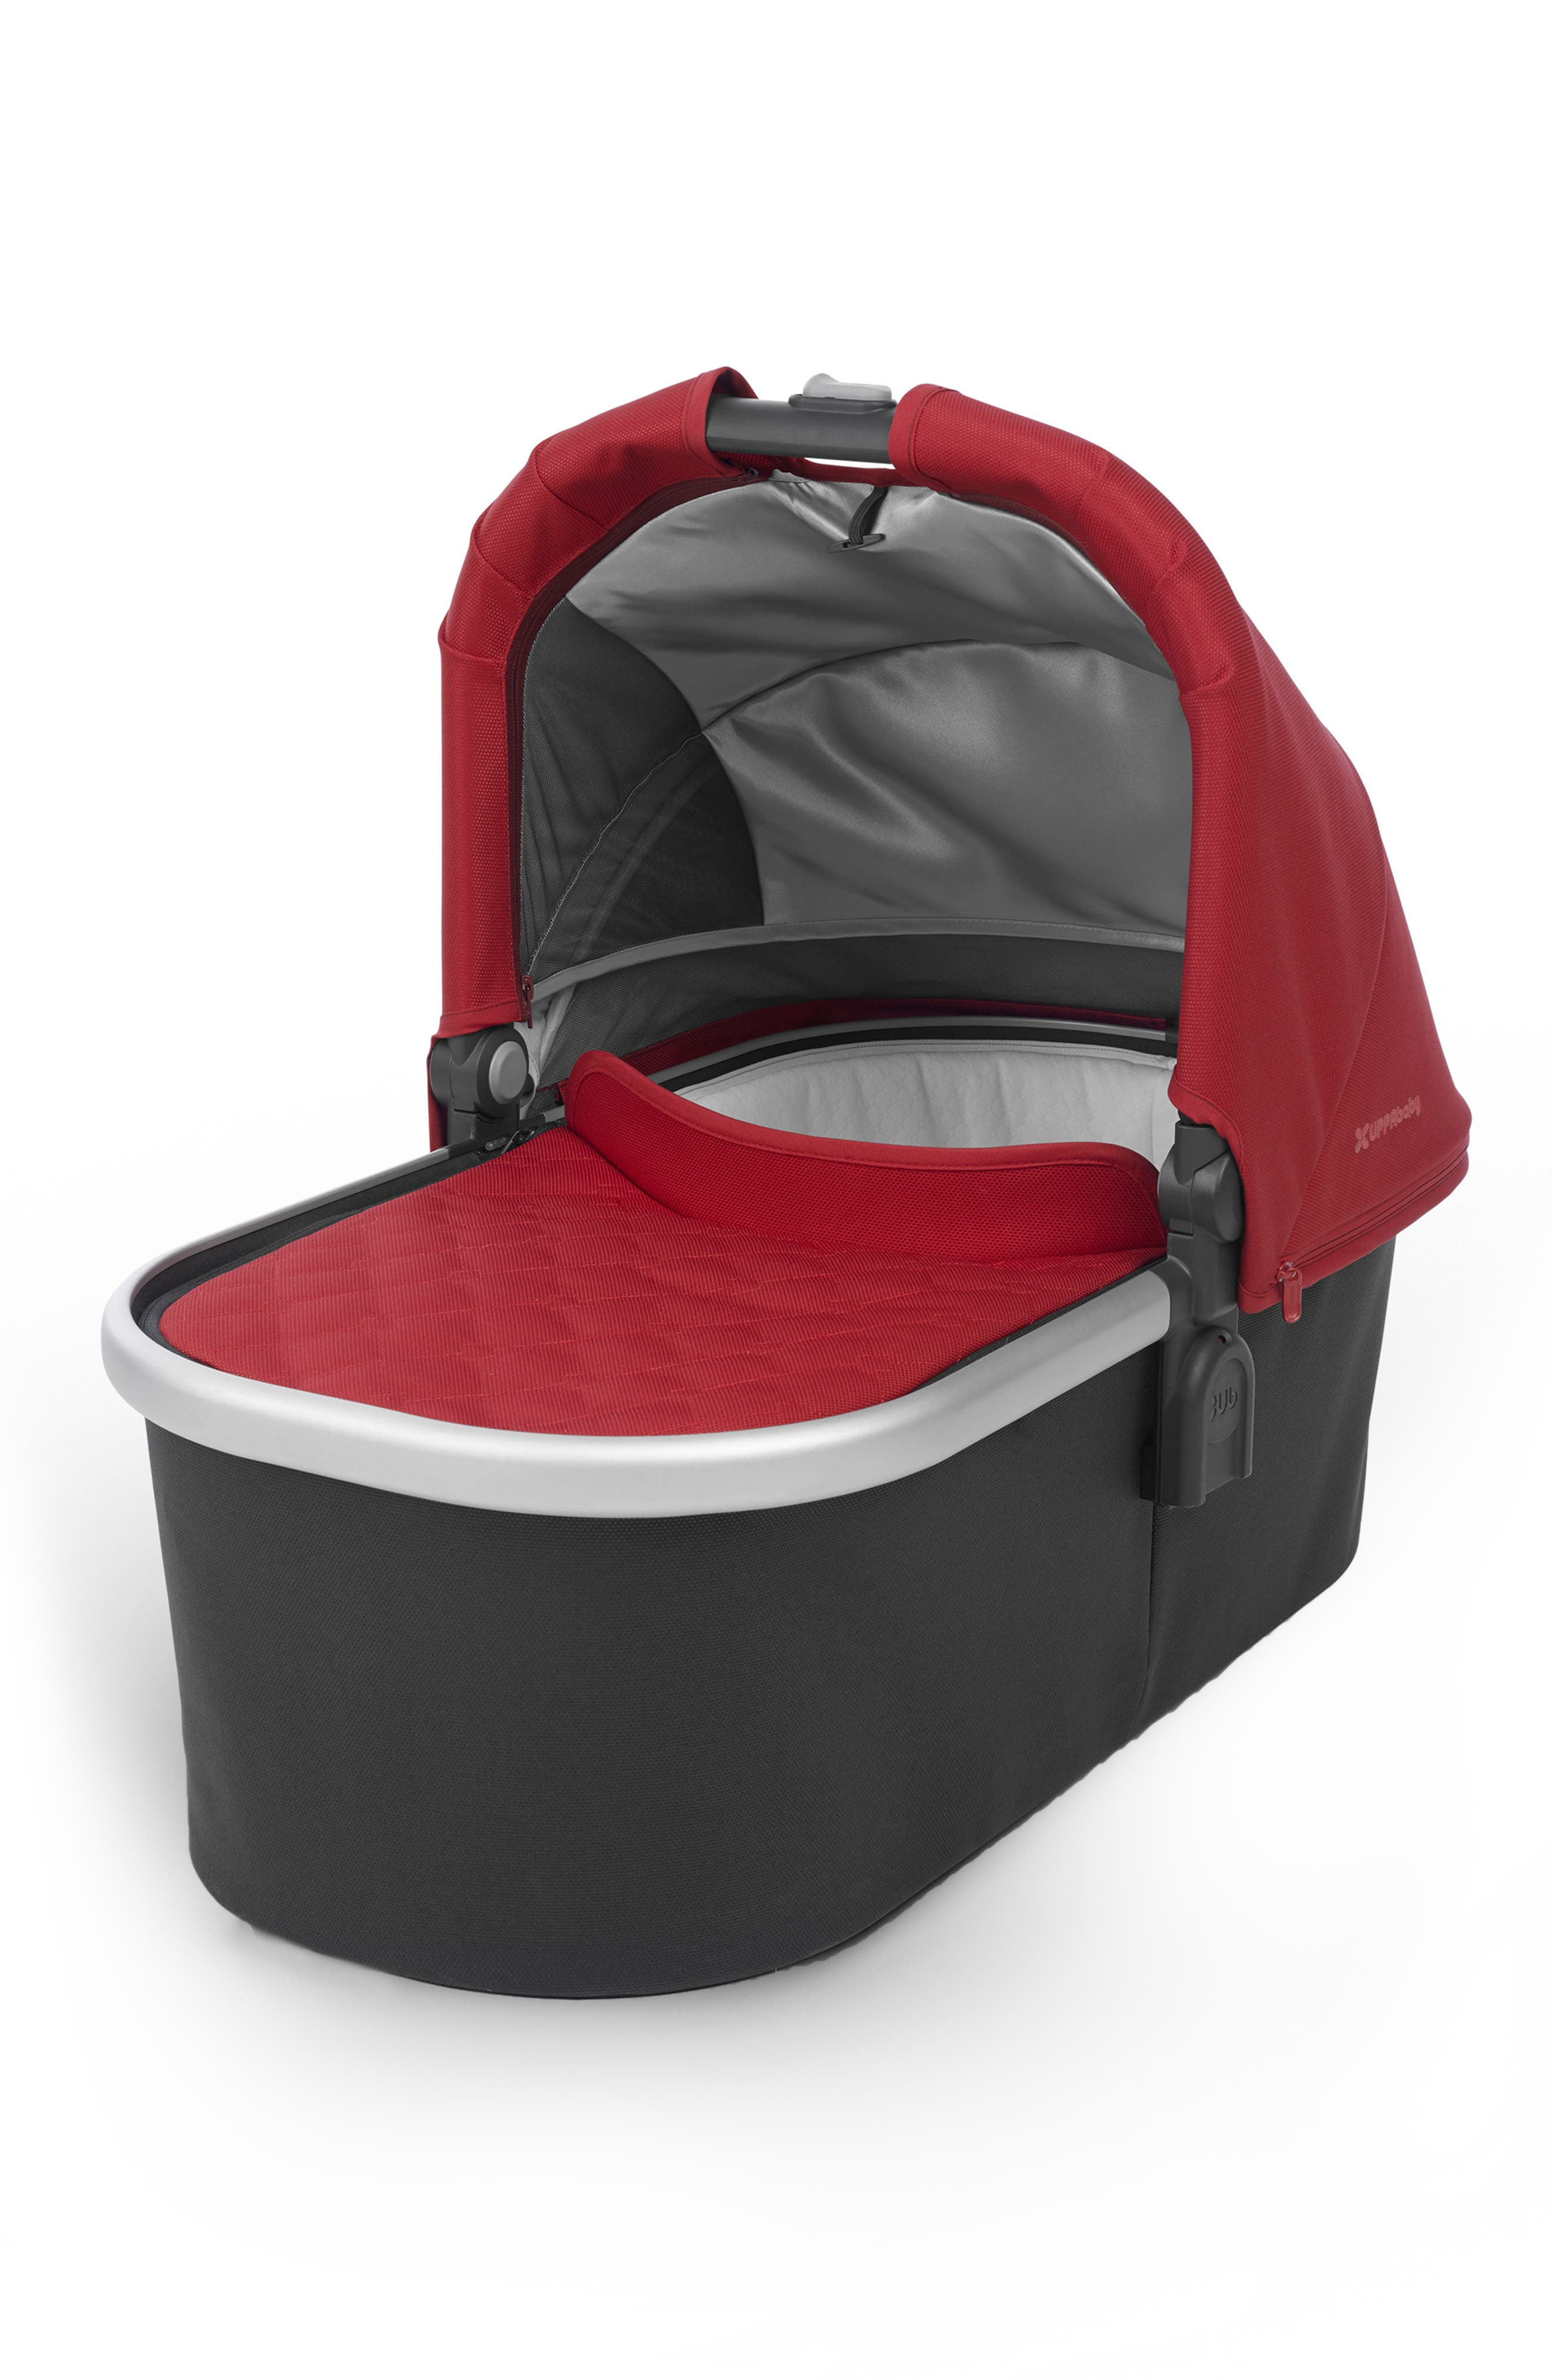 Alternate Image 1 Selected - UPPAbaby 2018 Bassinet for CRUZ or VISTA Strollers